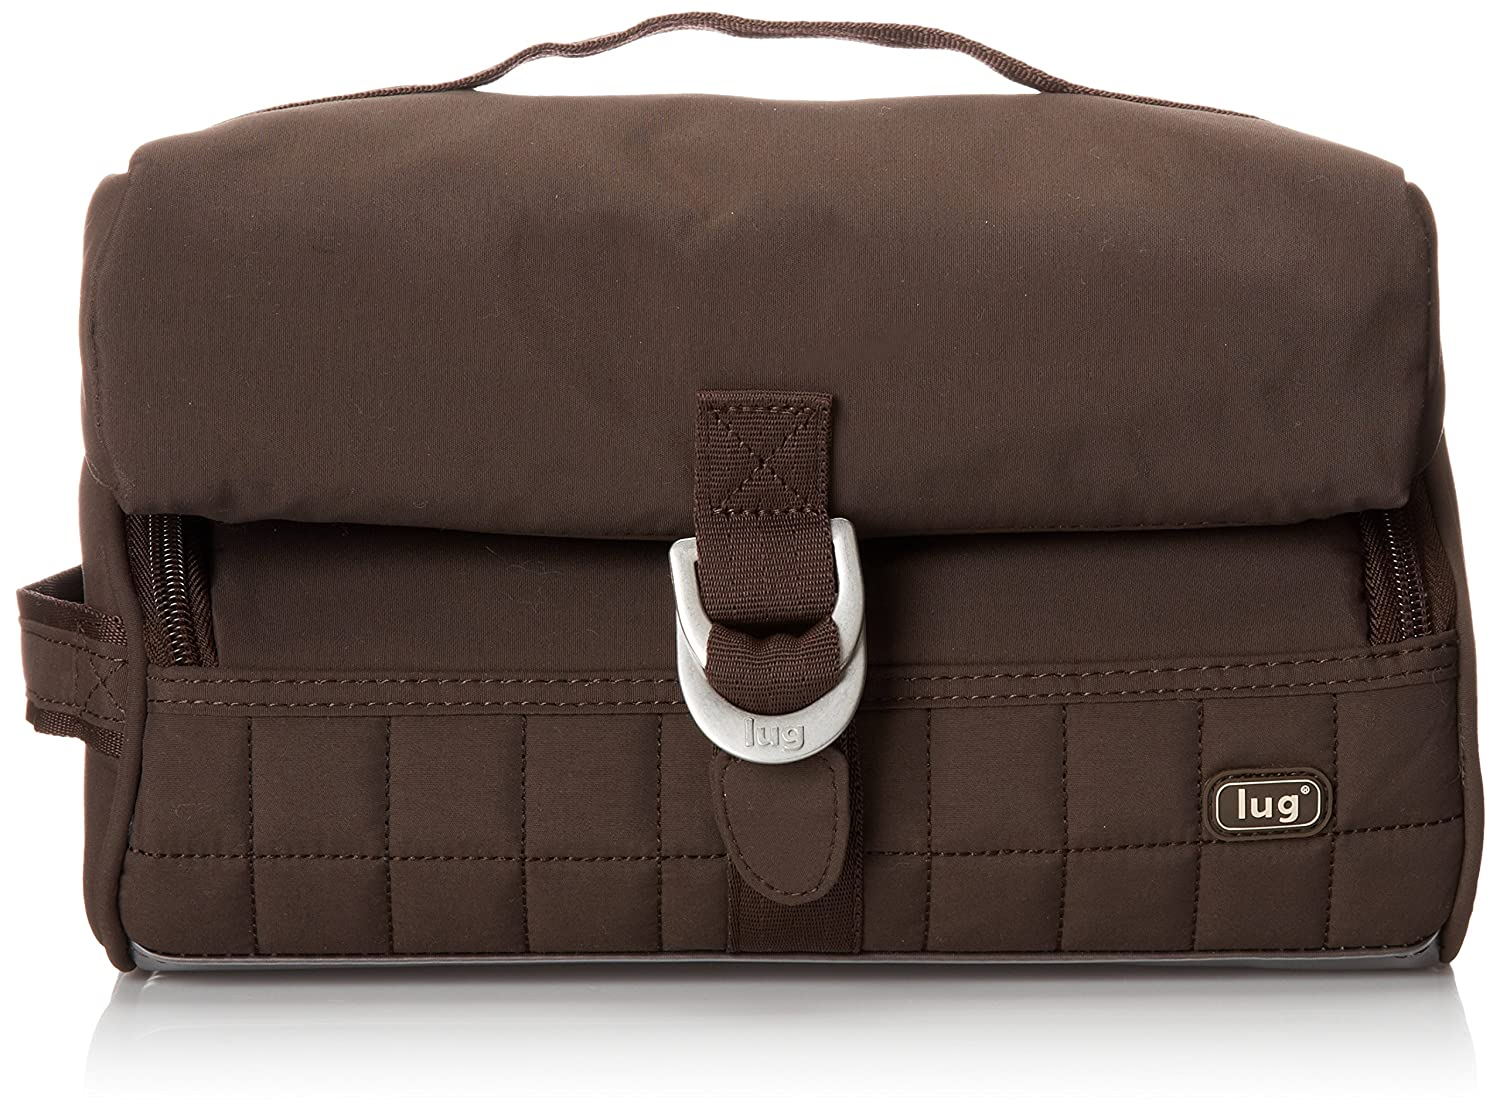 Lug-Flip-Top Toiletry Case in Chocolate Brown 880479205263